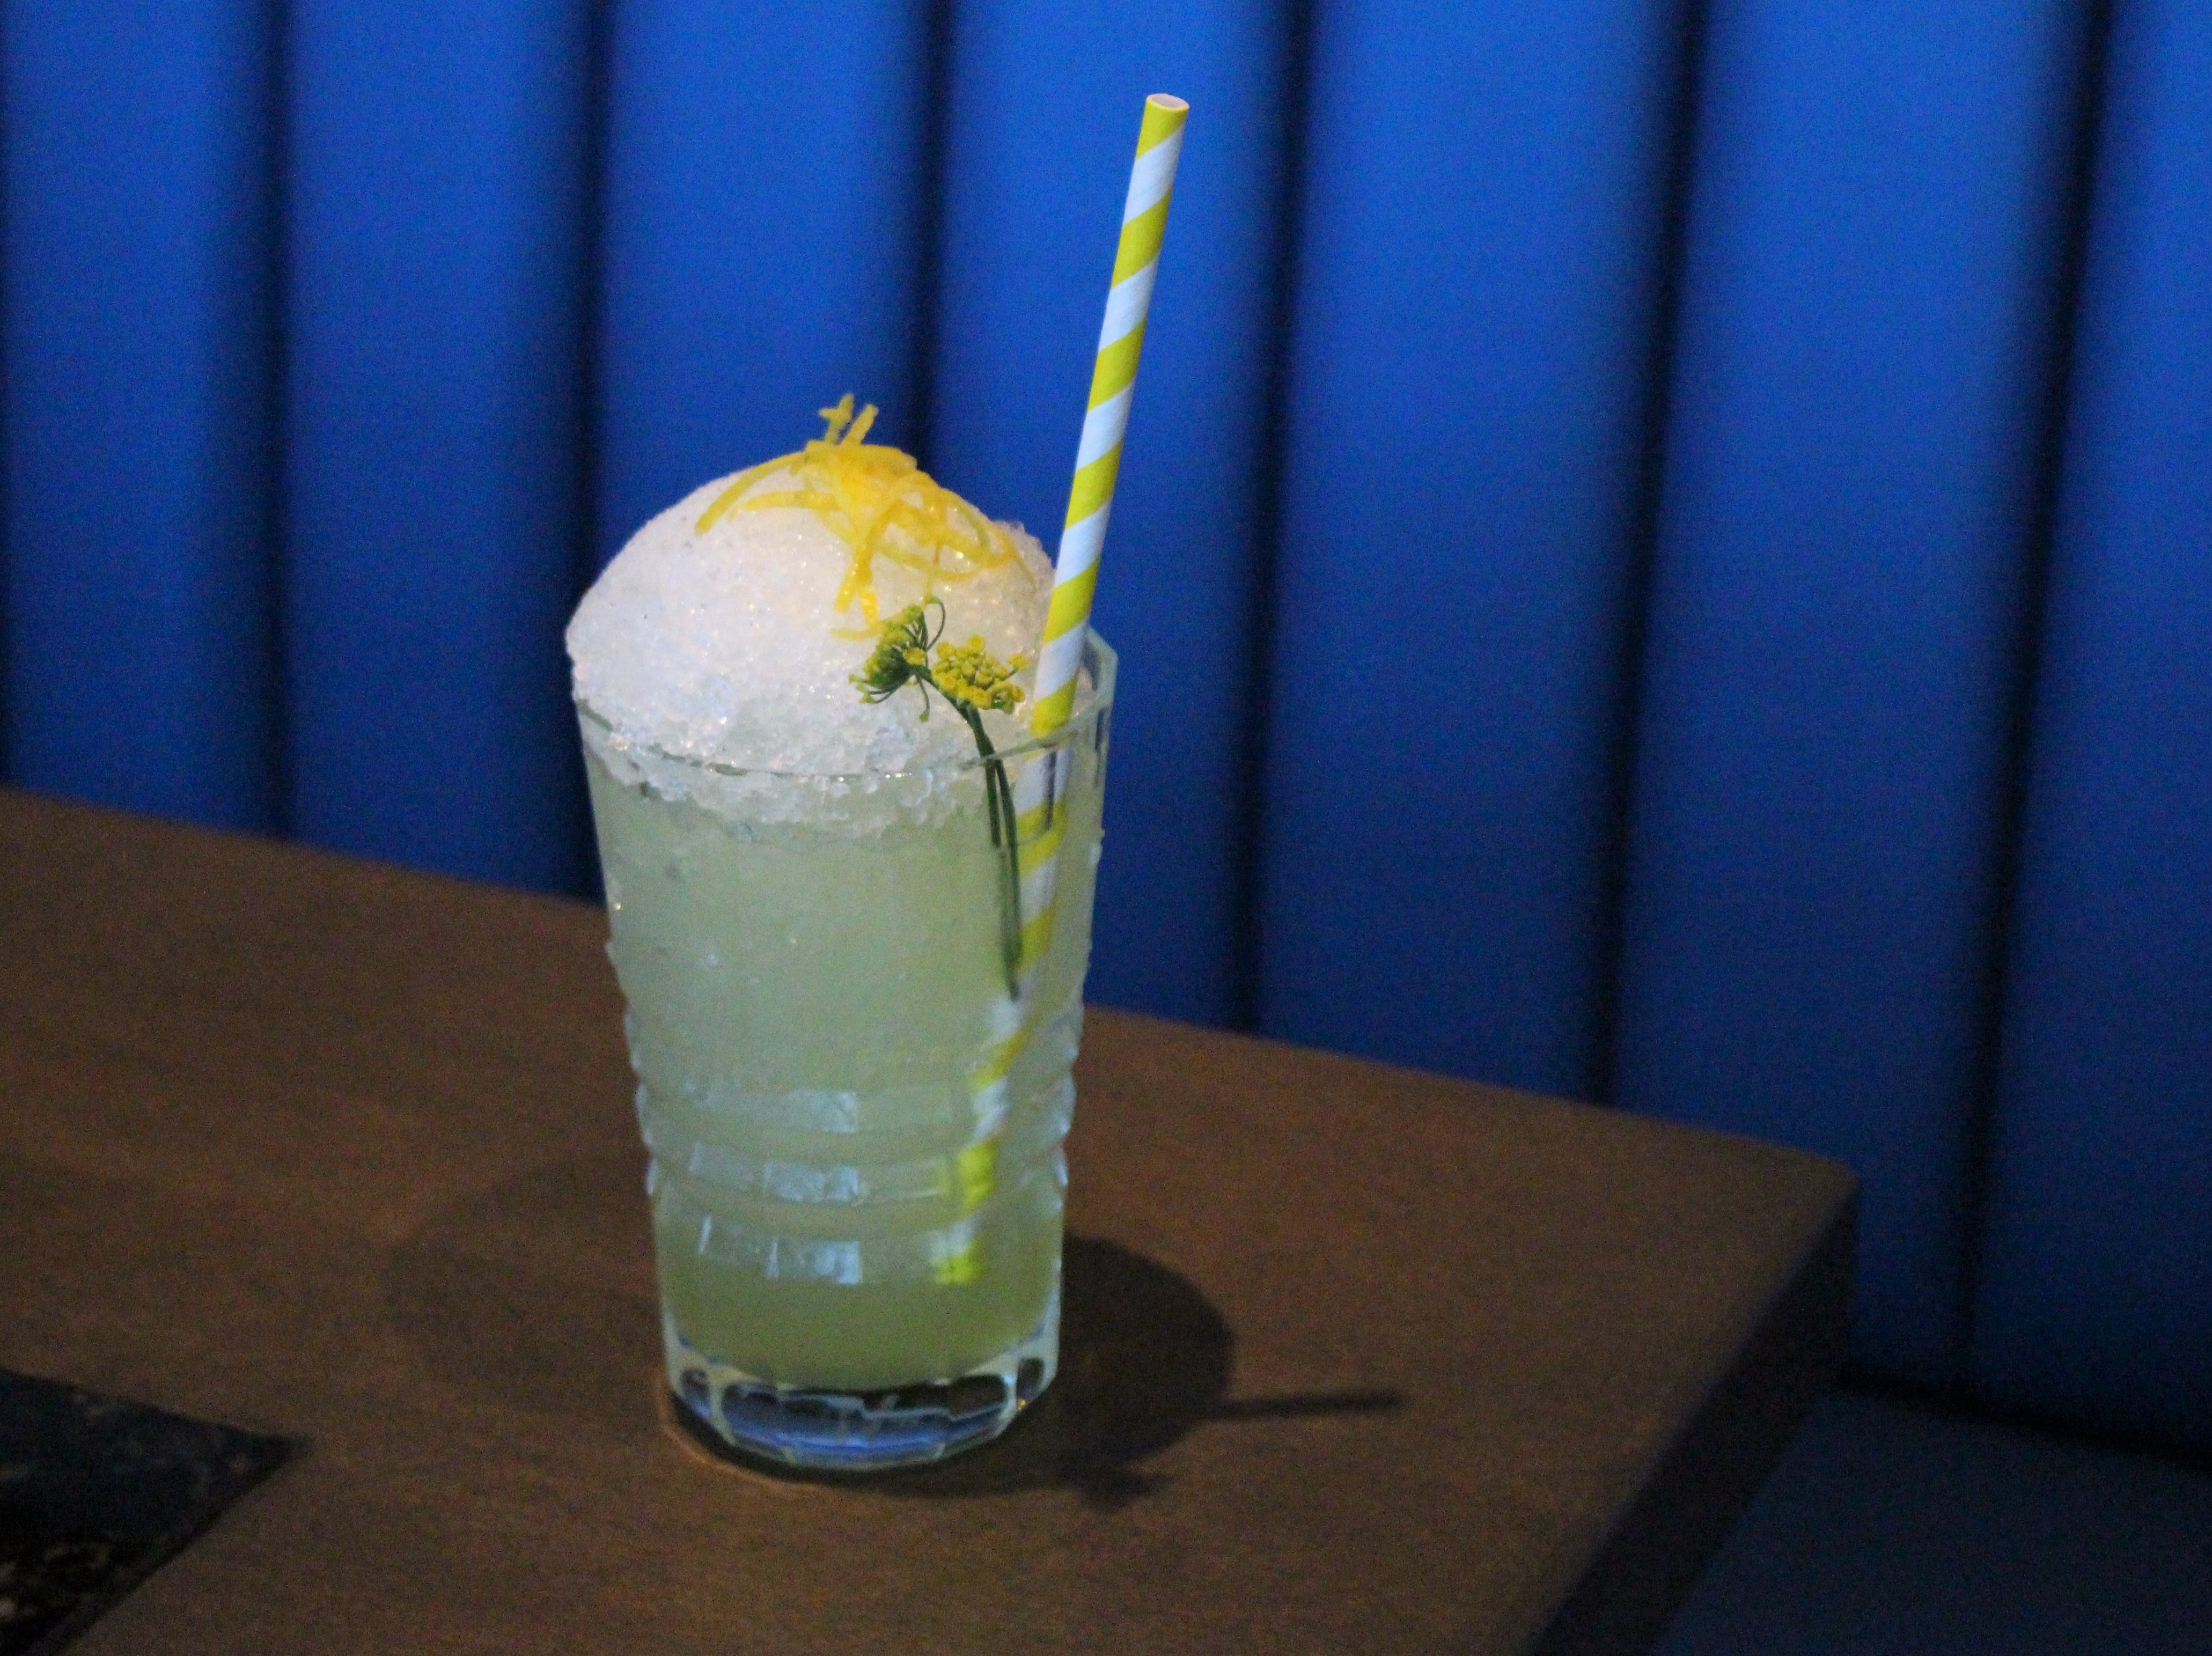 The Amalfi Frappe at Little Rituals in downtown Phoenix is served over crushed ice with a lemon zest garnish.